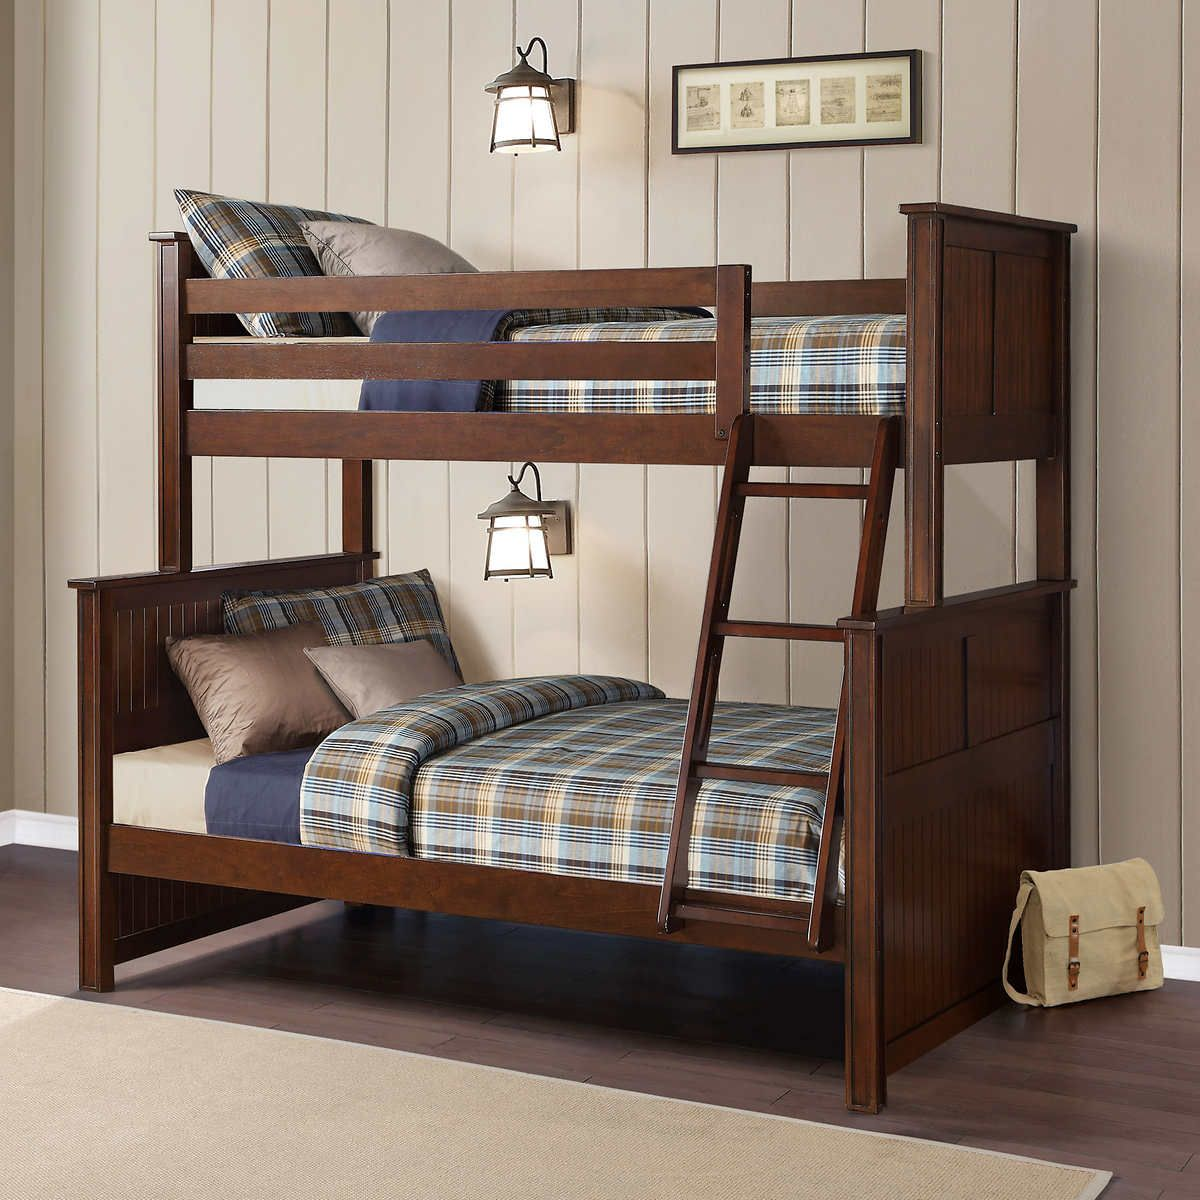 Best Pin By Plains Joy On Littles Bayside Furnishings Bunk Beds Full Bunk Beds 400 x 300